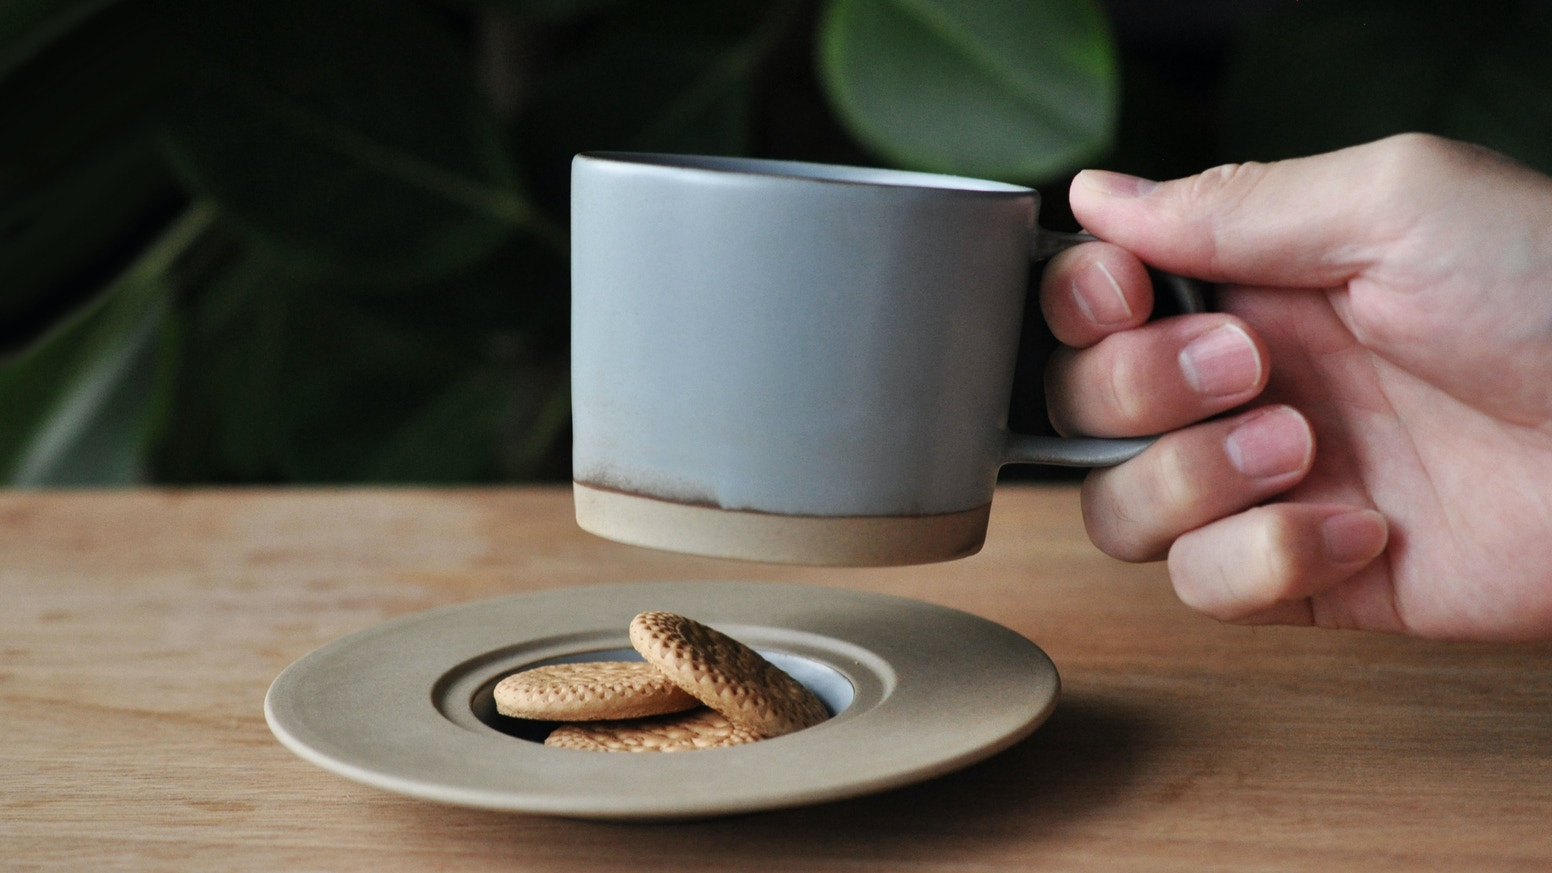 MARUHI Cup and Saucer is the top crowdfunding project launched today. MARUHI Cup and Saucer raised over $1781200 from 208 backers. Other top projects include Aurga, World's First Smart DSLR Assistant & Cloud Storage, Mr. ESP 1, Your Exclusive Brainwave Equipment, Arrows - A Game with a Point...